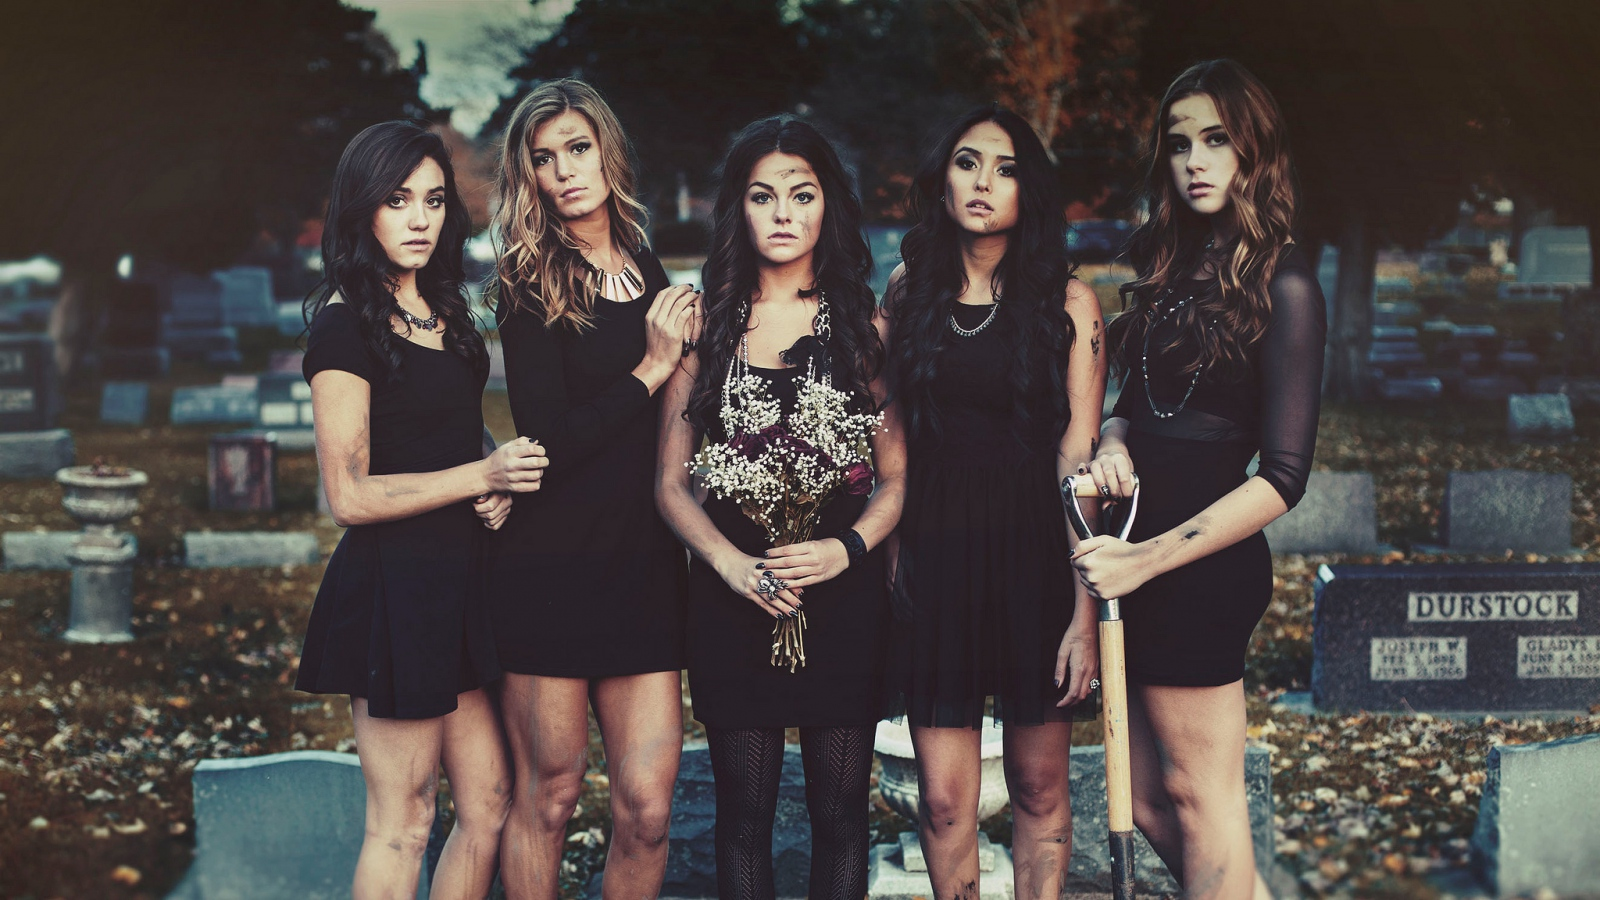 pretty_little_liars_girl_series_95630_1600x900